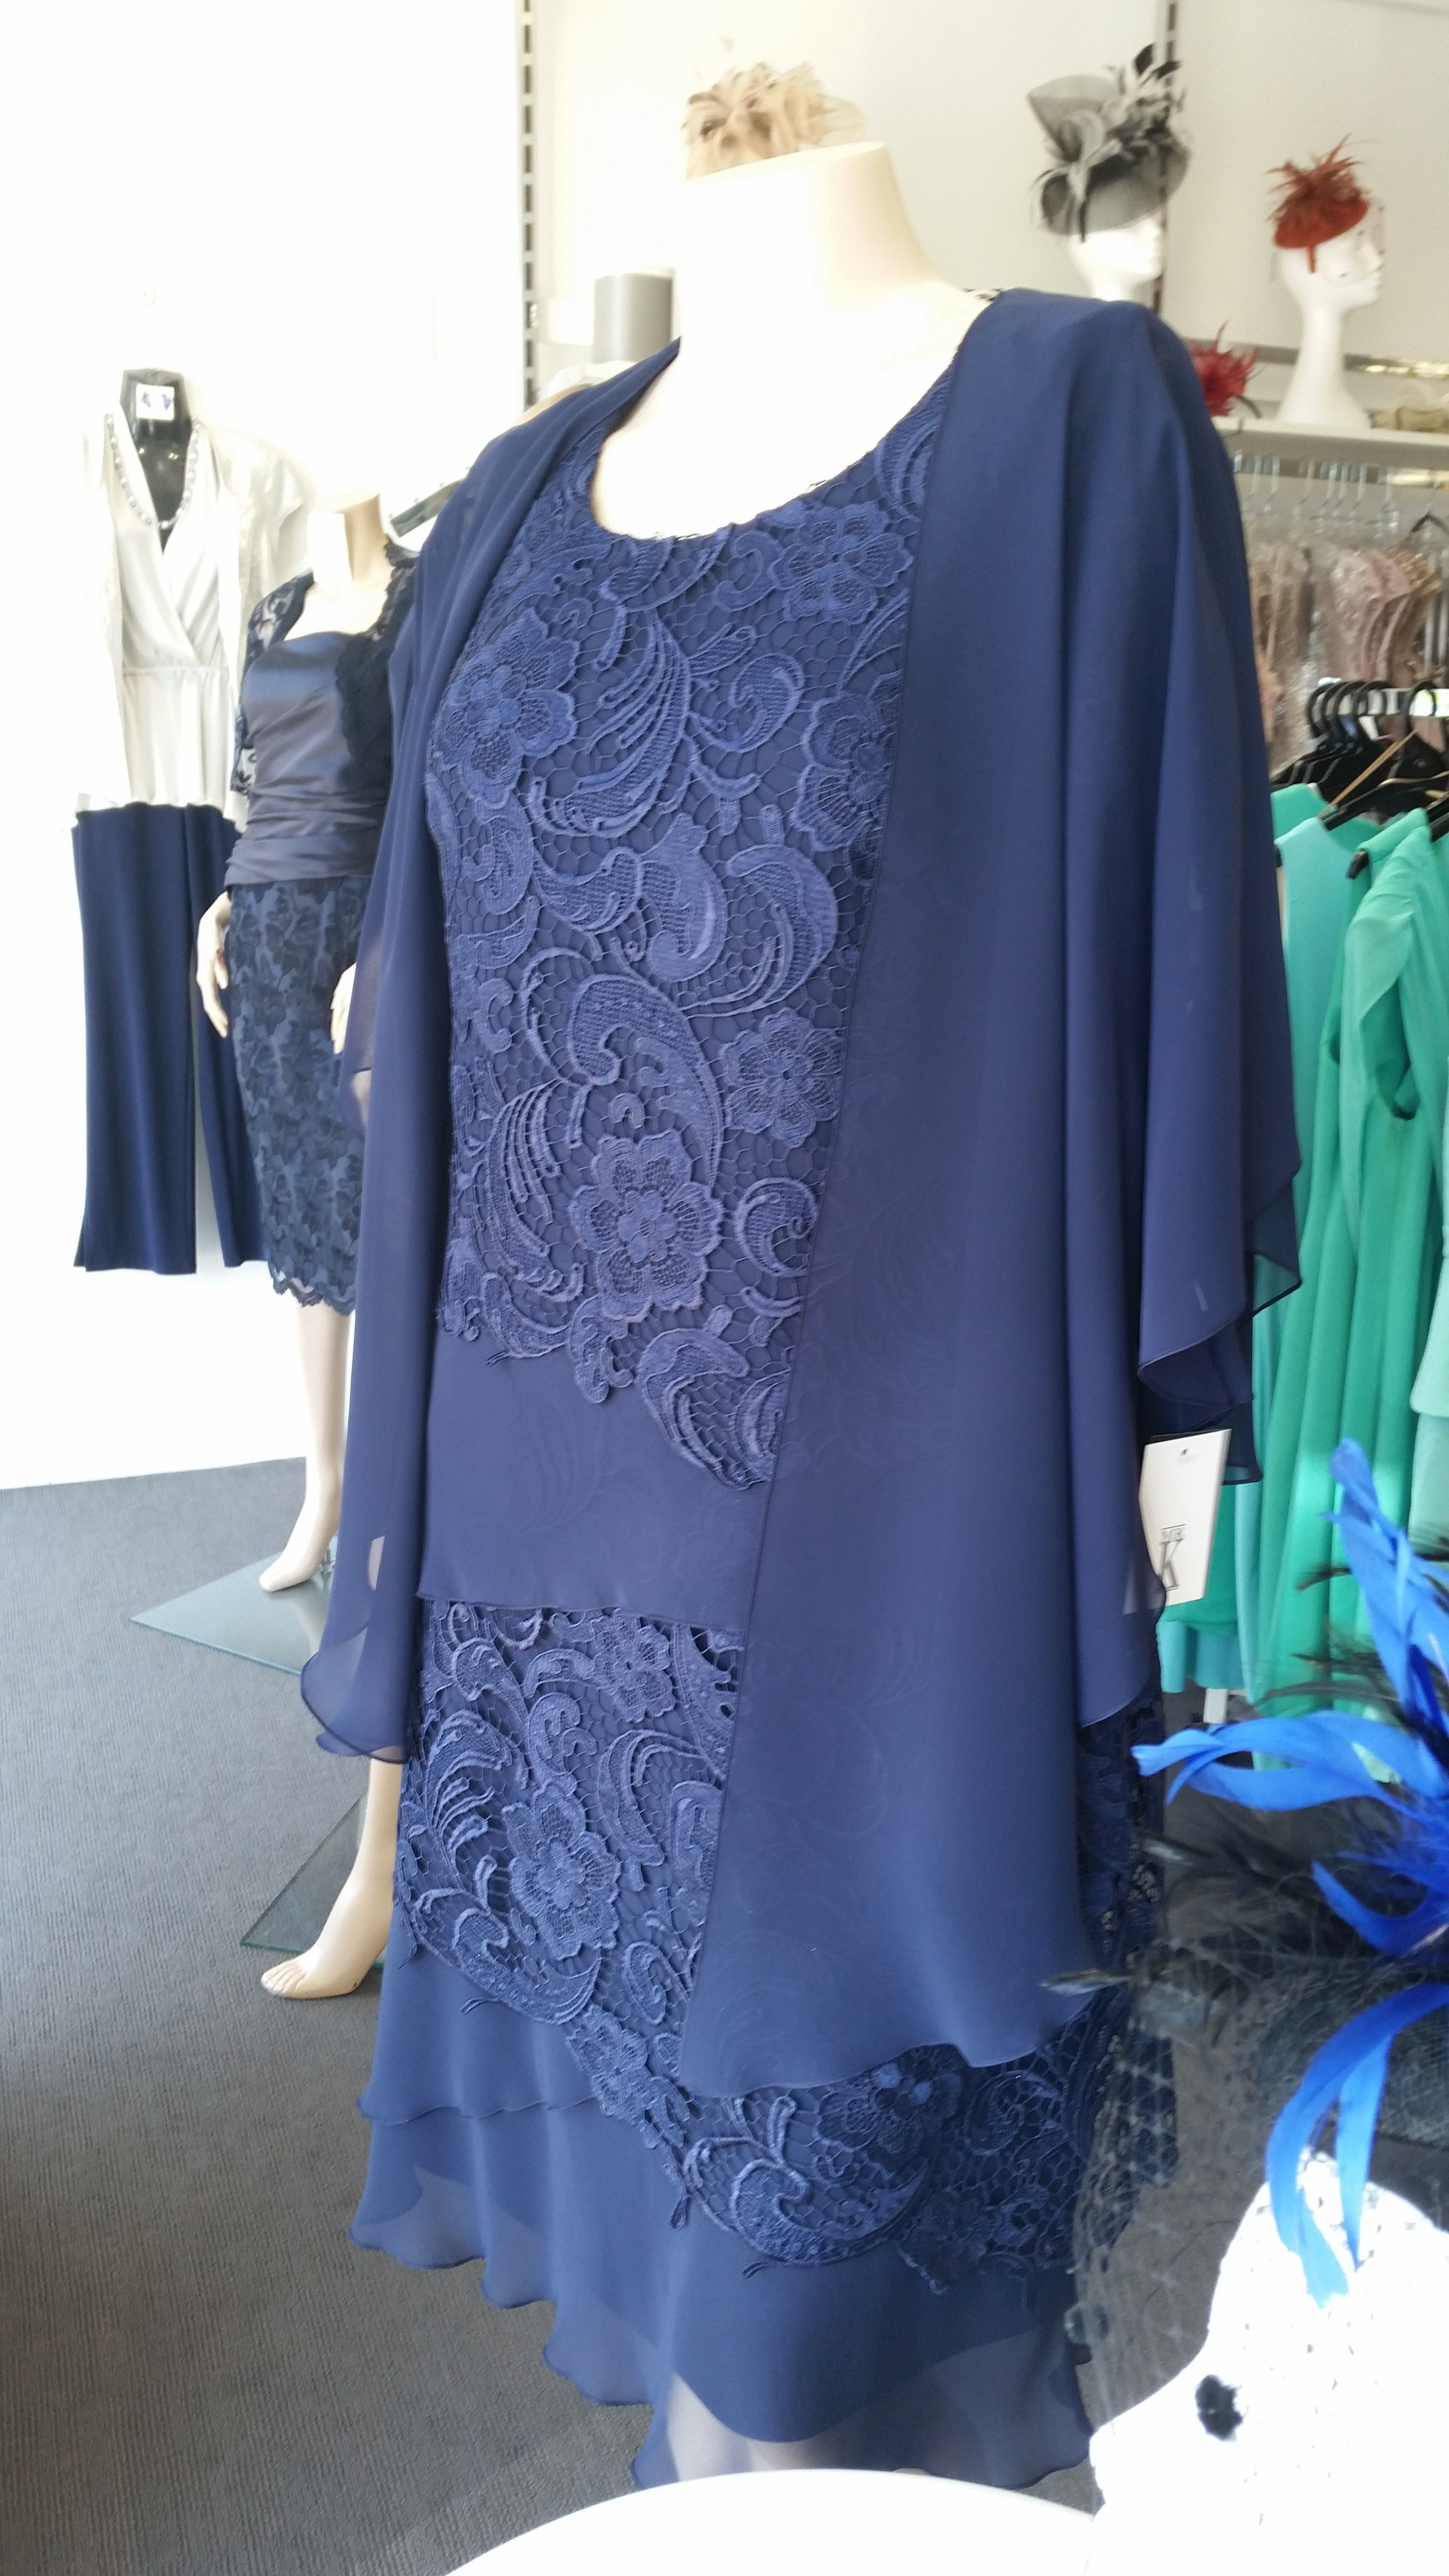 Mother Of The Bride Groom Grandmother Of The Bride Size 18 Mother Of Bride Outfits Mother Of Groom Dresses Bride Clothes [ 5312 x 2988 Pixel ]